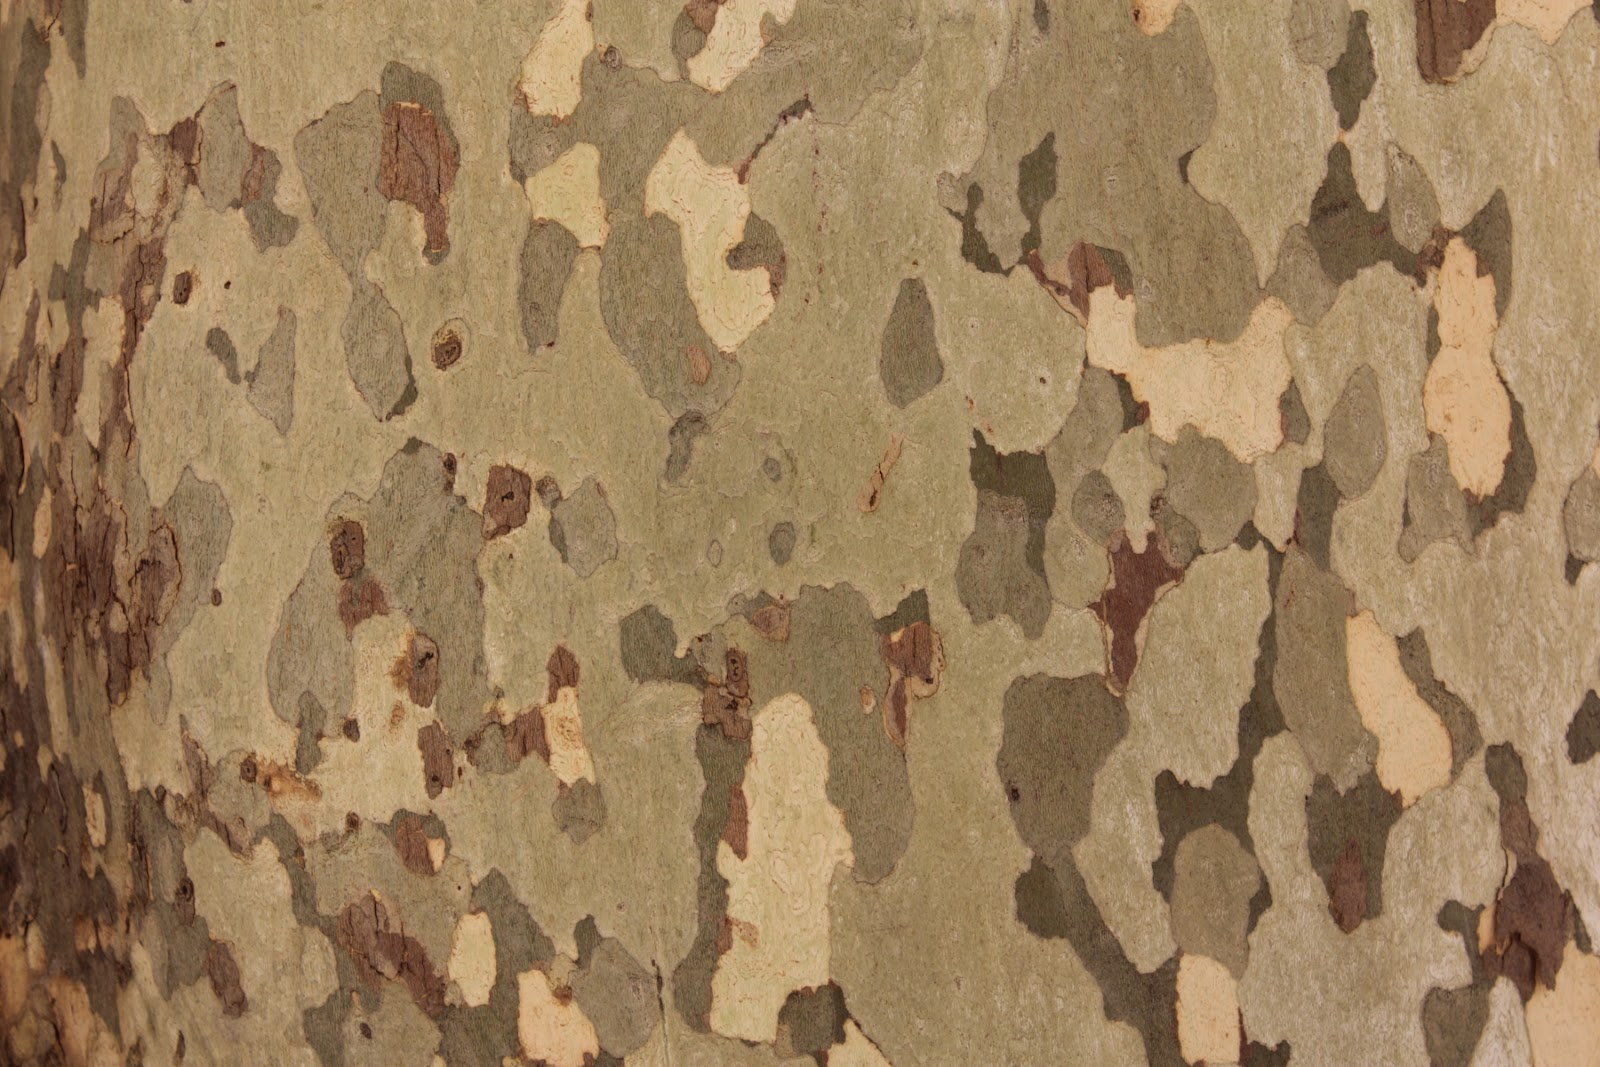 Cool Camouflage pattern on a tree bark